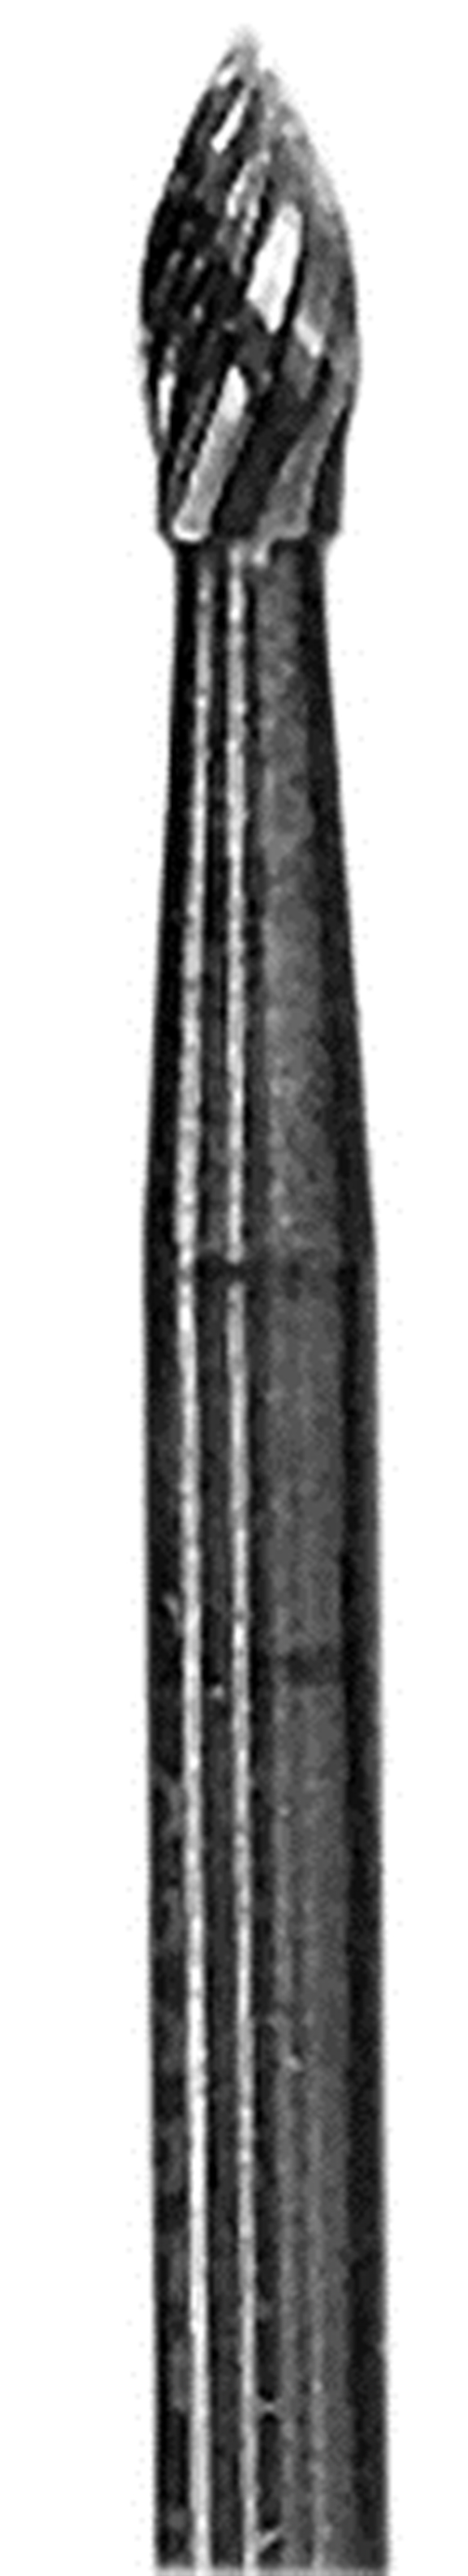 Grobet CARBIDE BUR USA MADE FLAME  1/8X1/4X1/8    STANDARD CUT at Sears.com